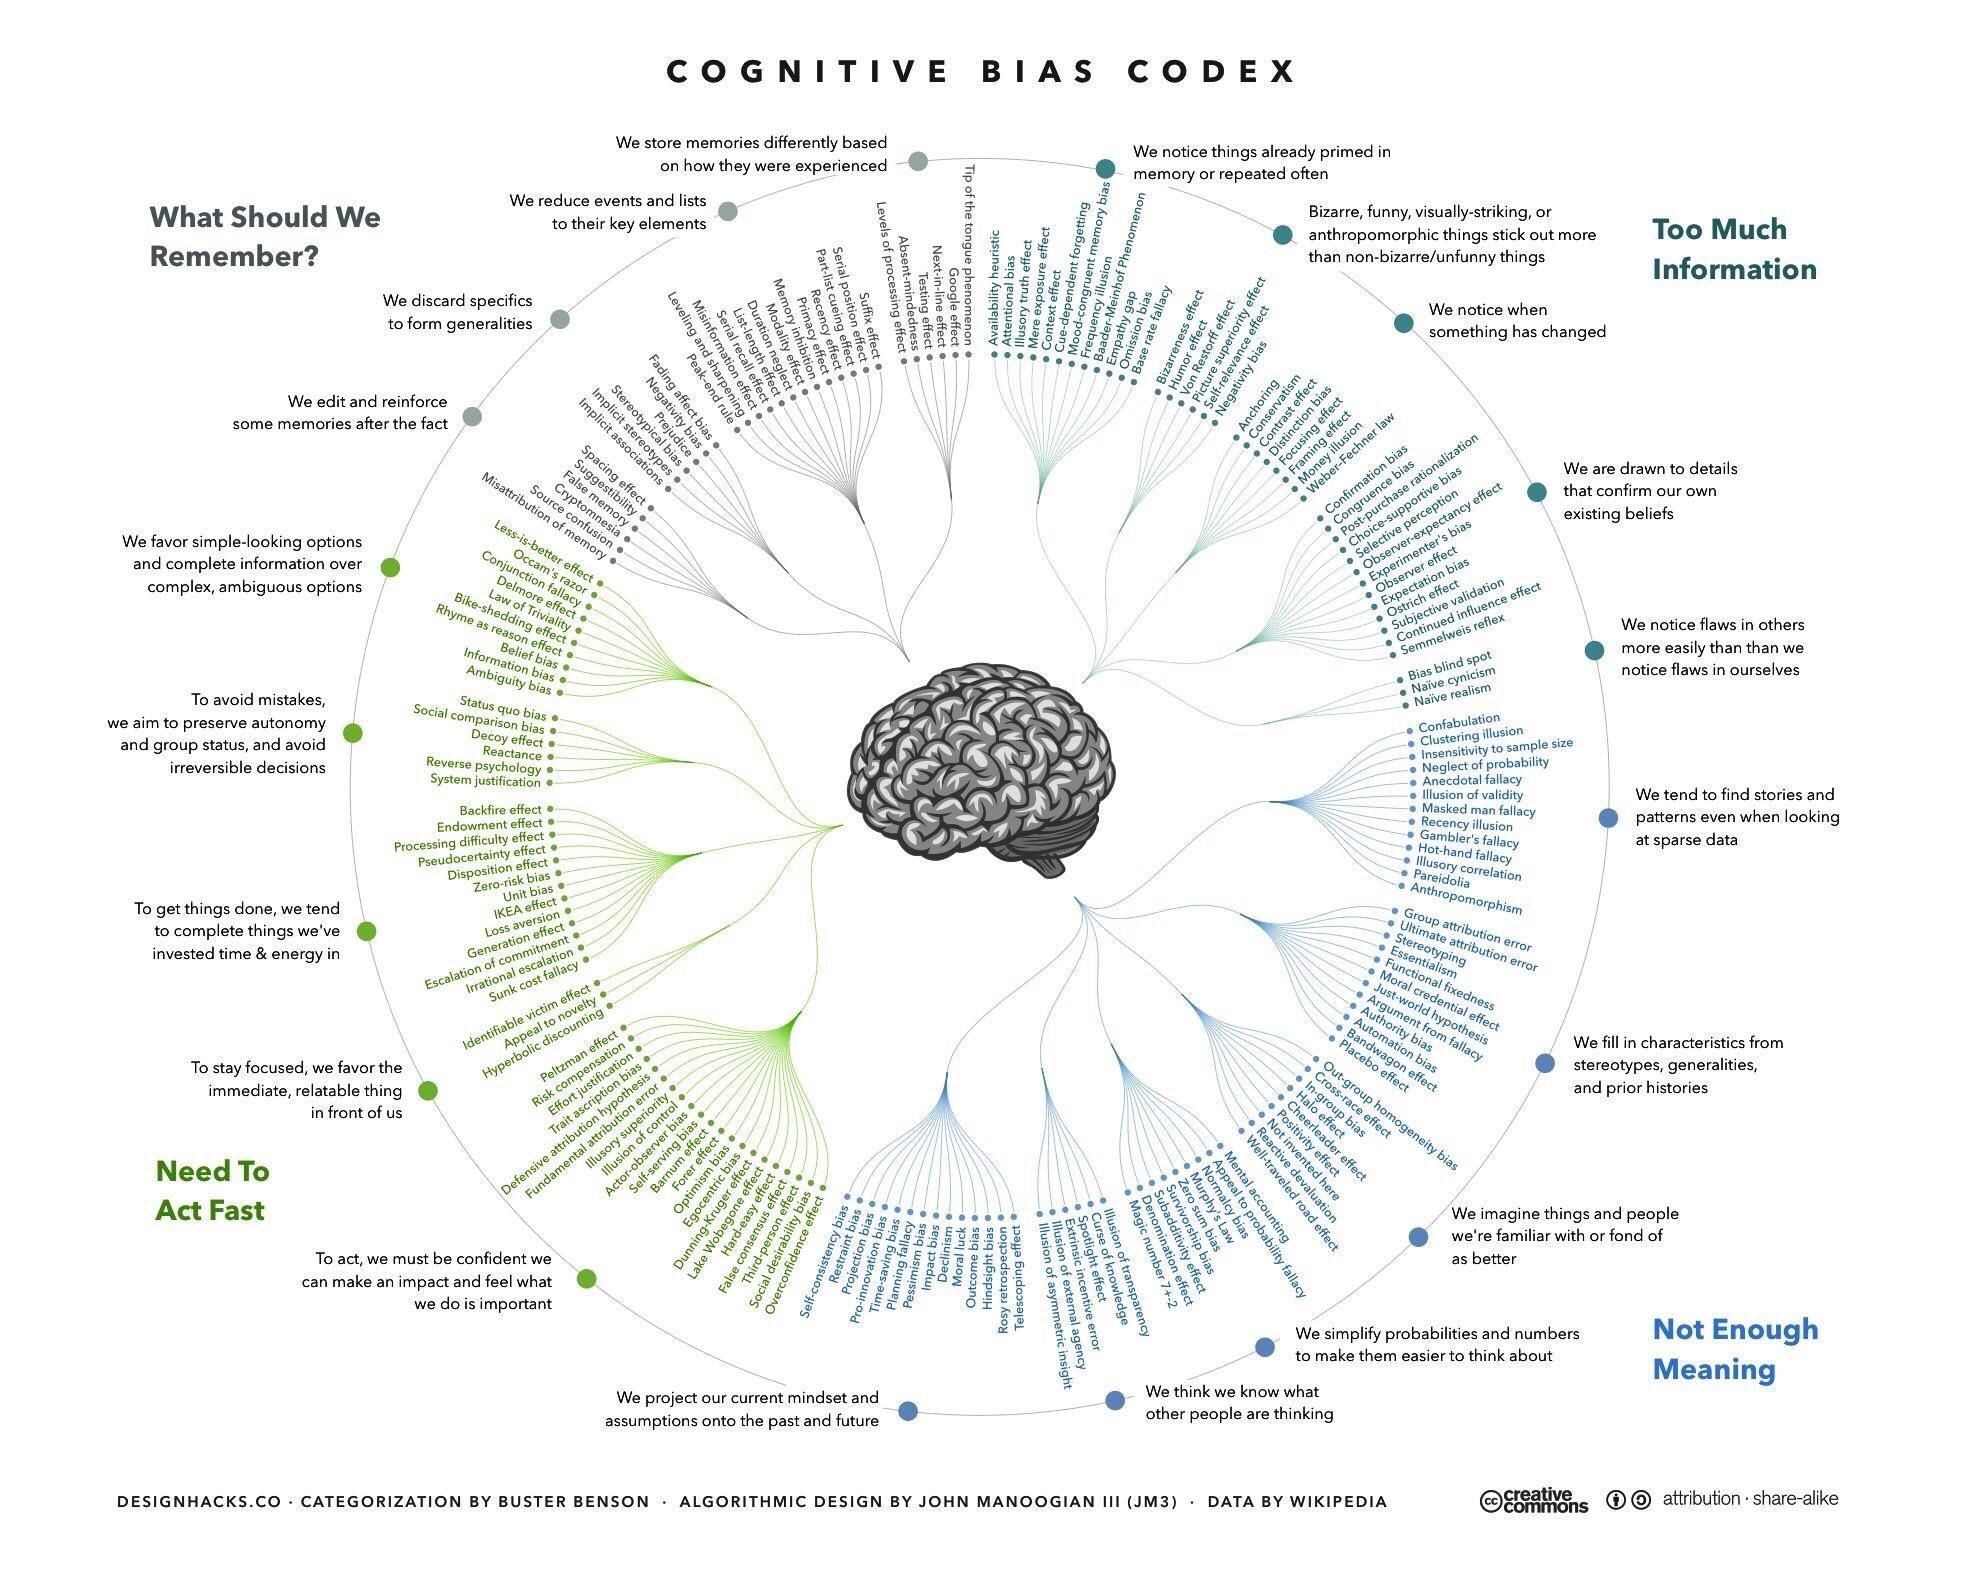 Fantastically Detailed And Categorised Infographic Describing